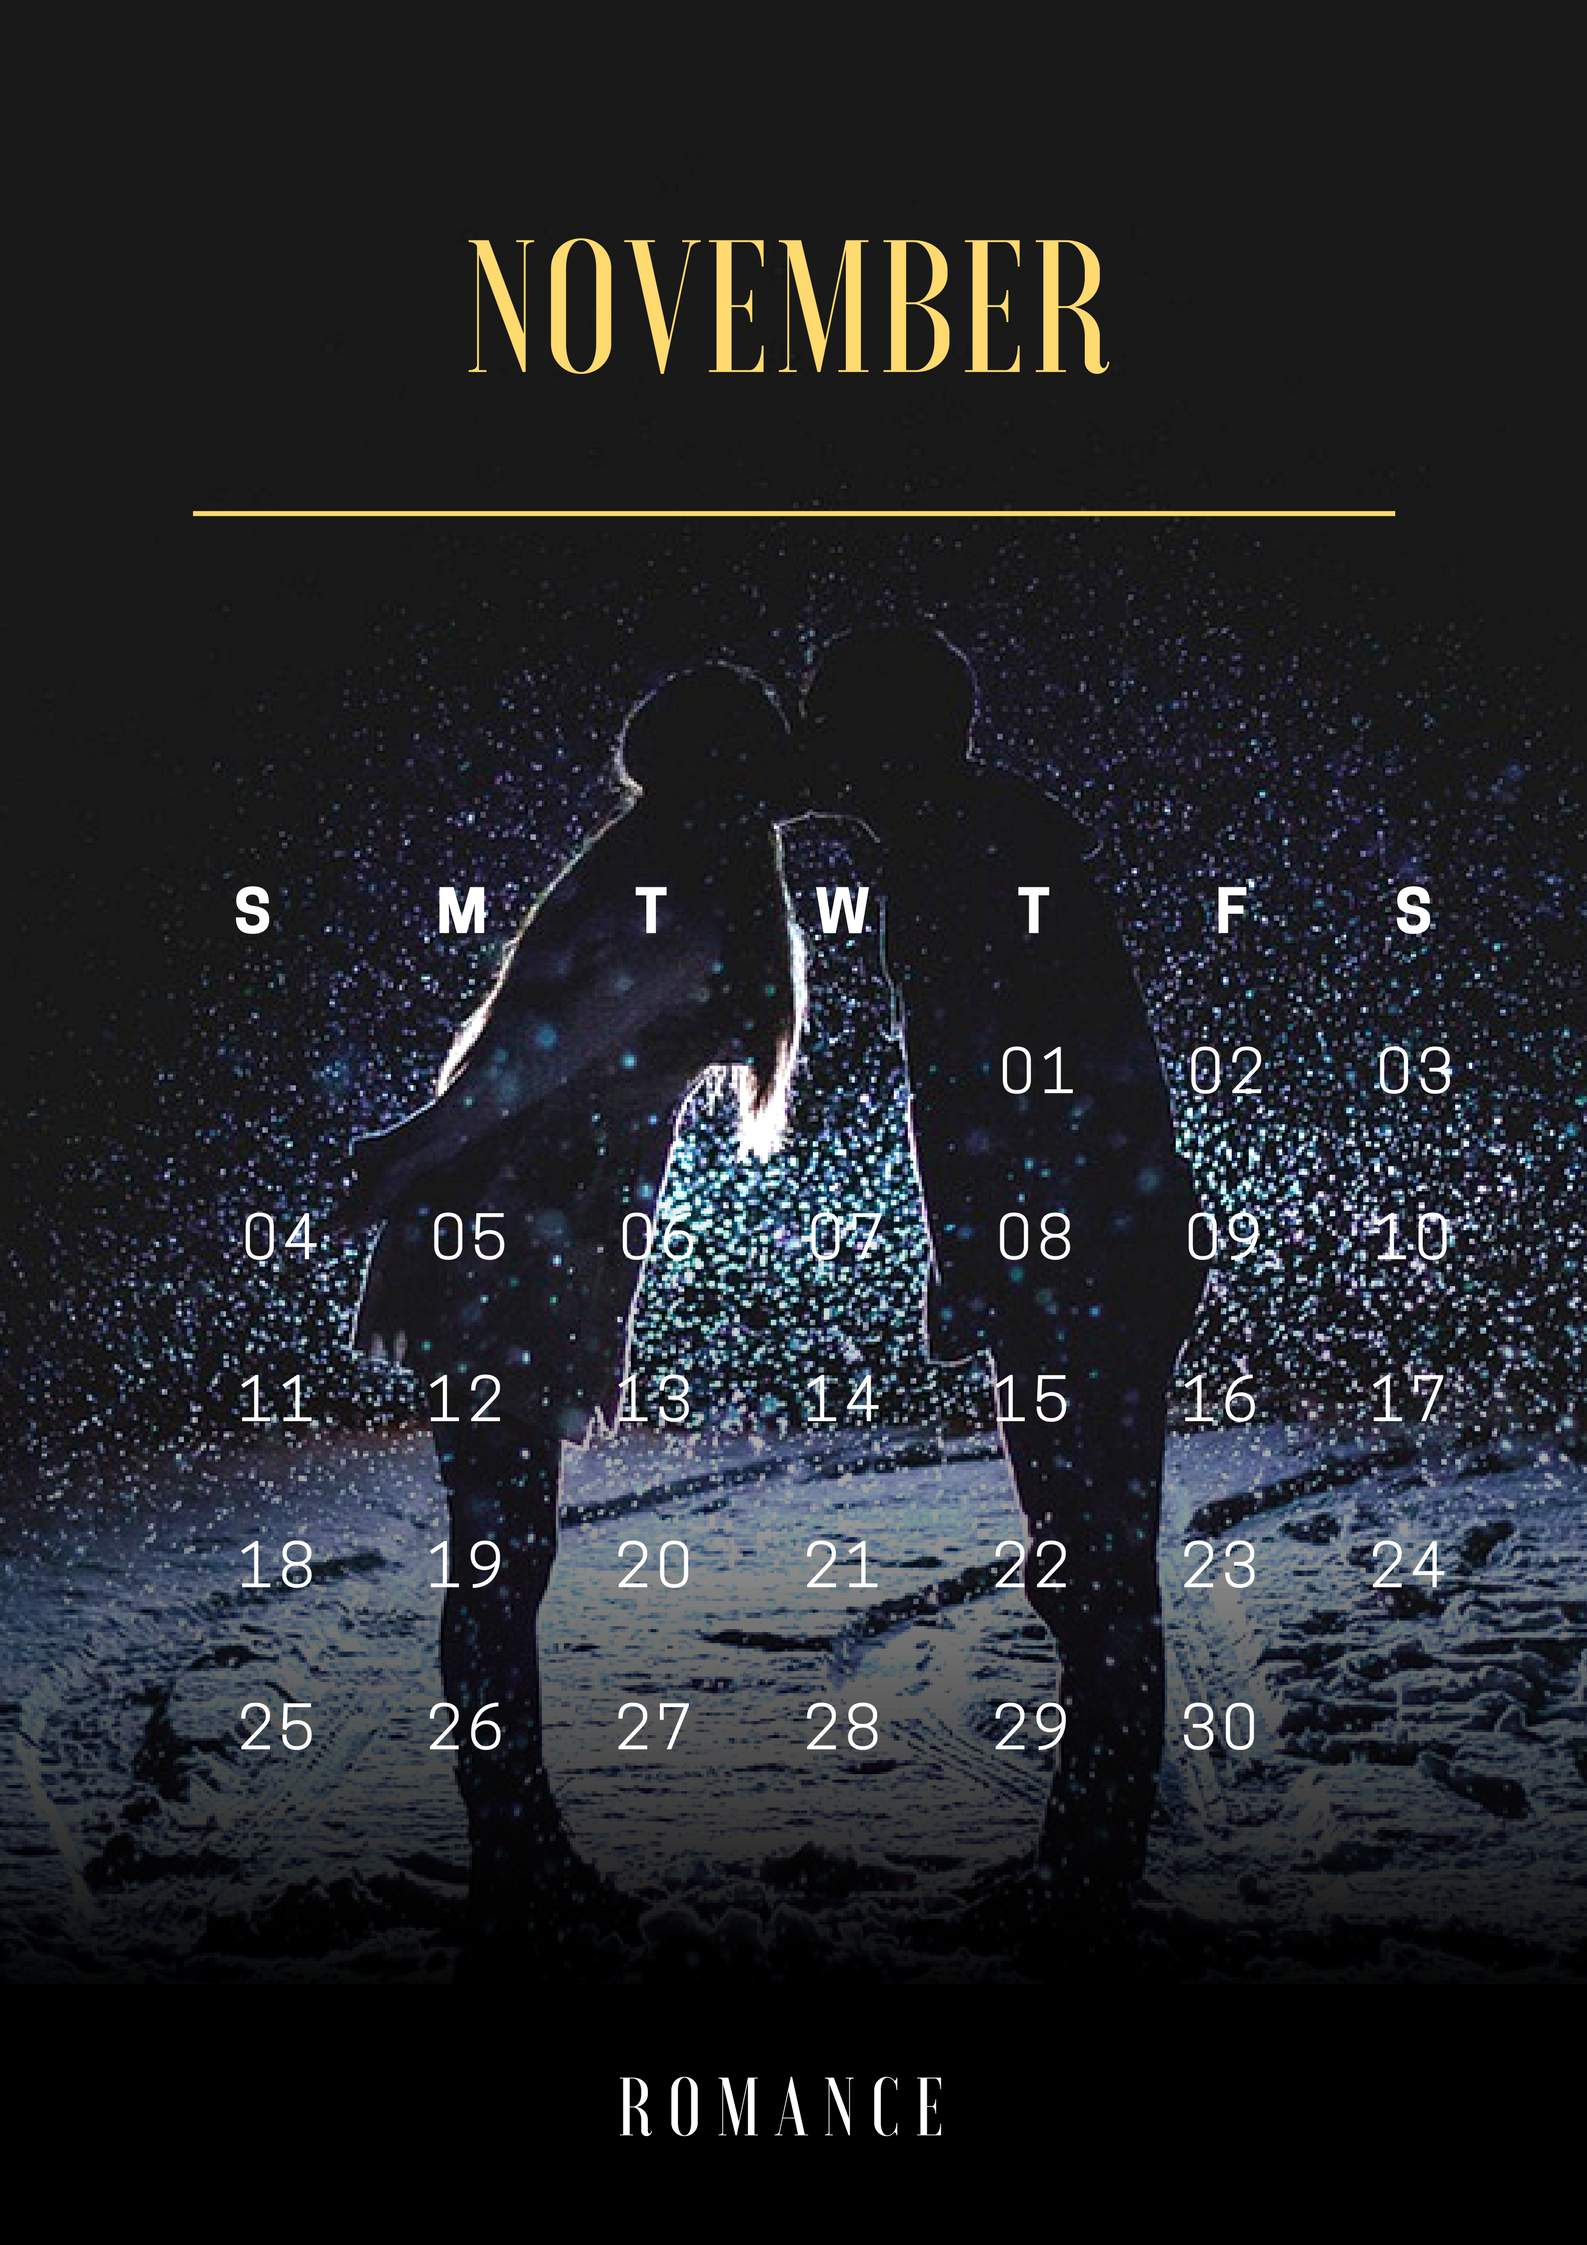 November 2018 Romantic iPhone Calendar